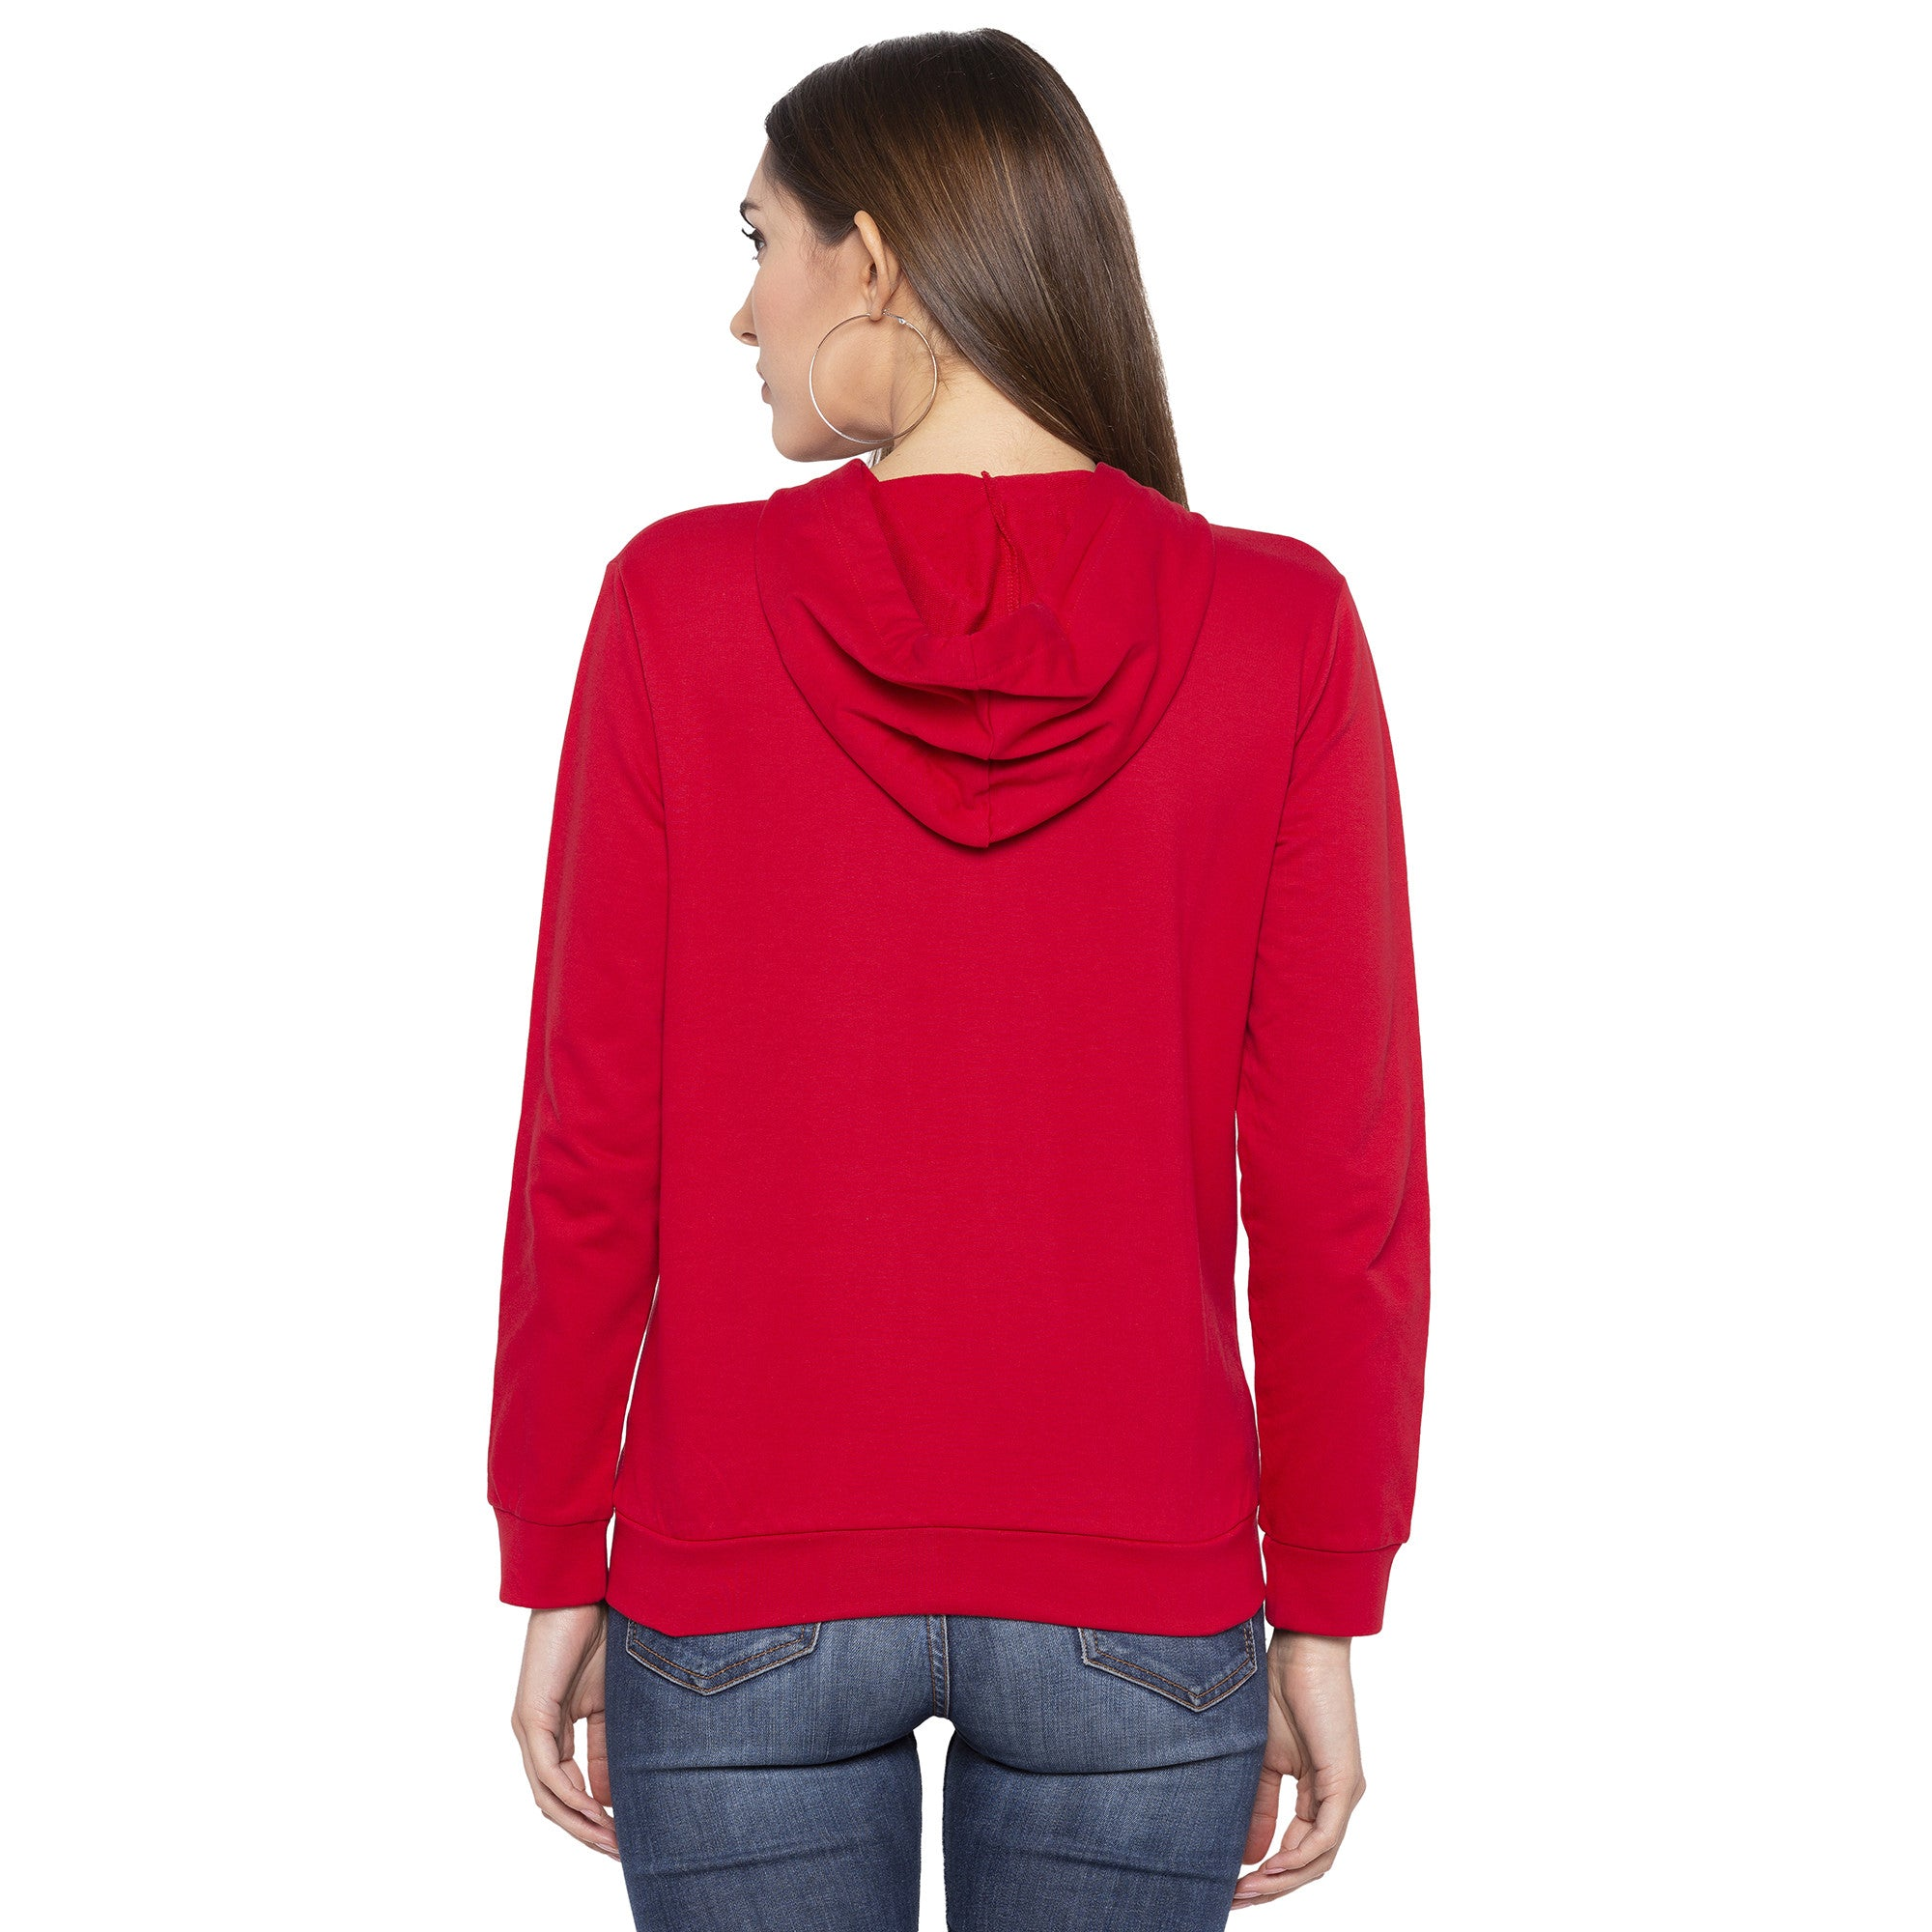 Casual Red Color Solid Hooded Sweatshirt-3